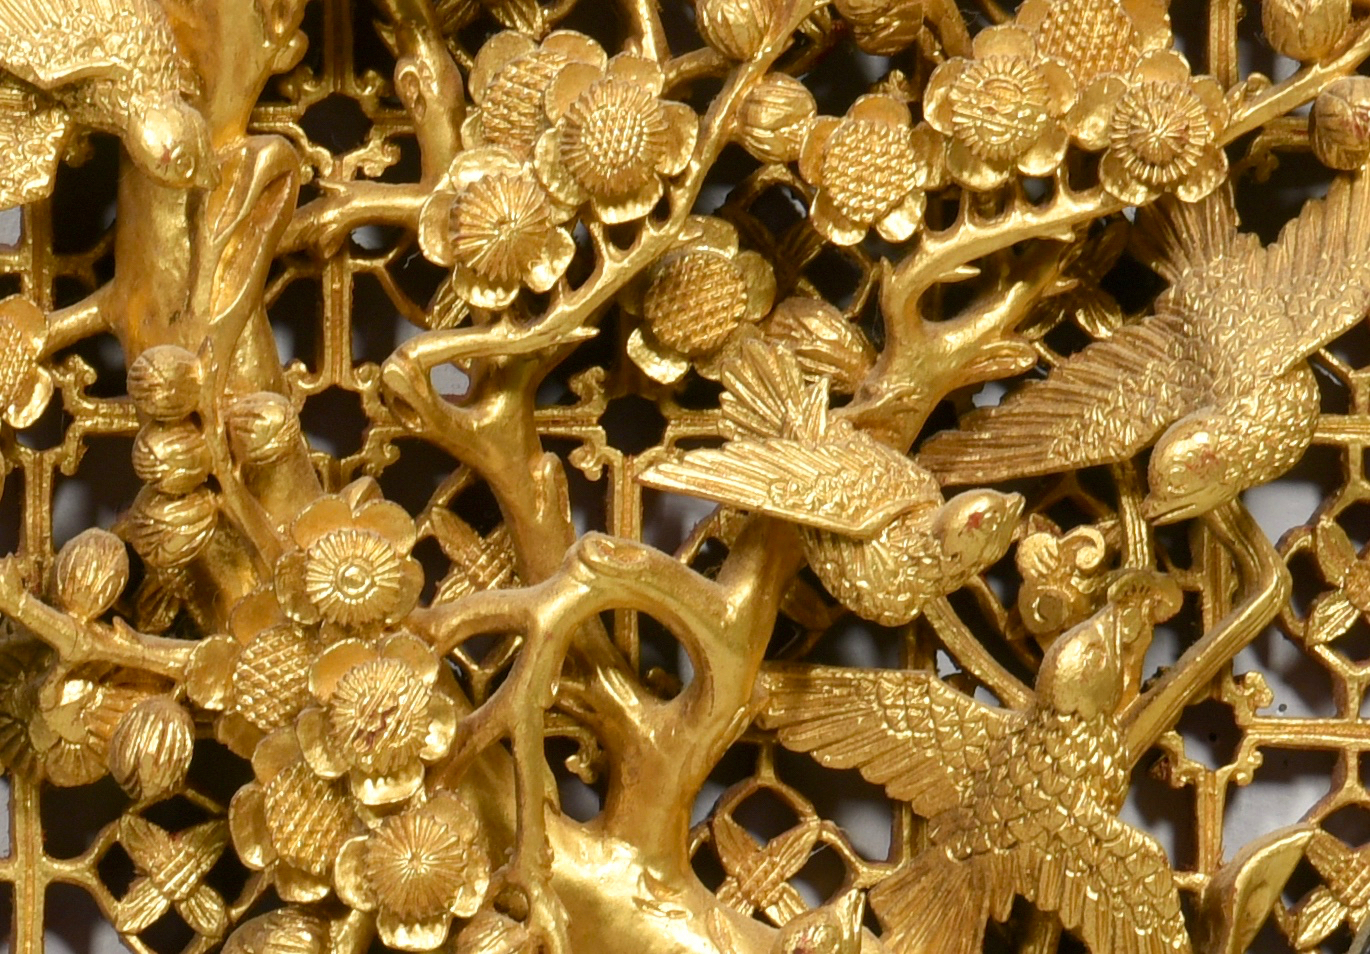 Lot 57: Pr. Chinese Carved Gilt Wood Panels